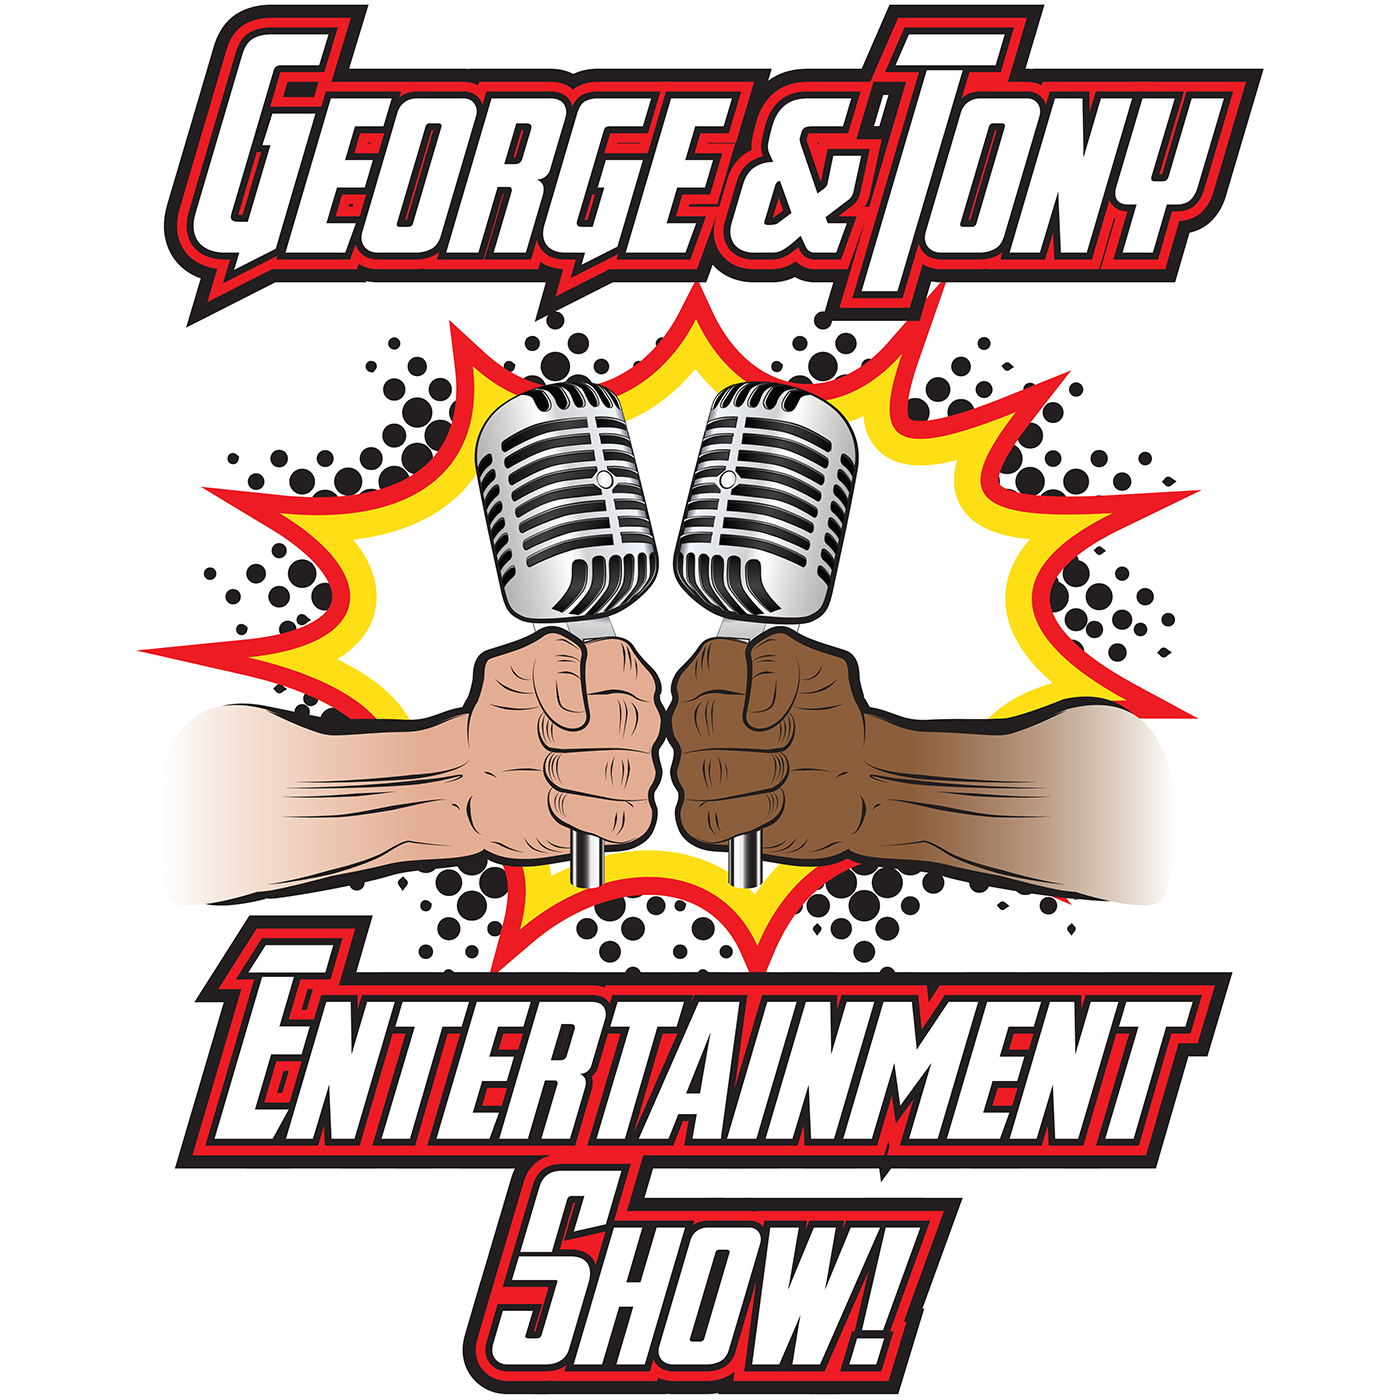 George and Tony Entertainment Show #88